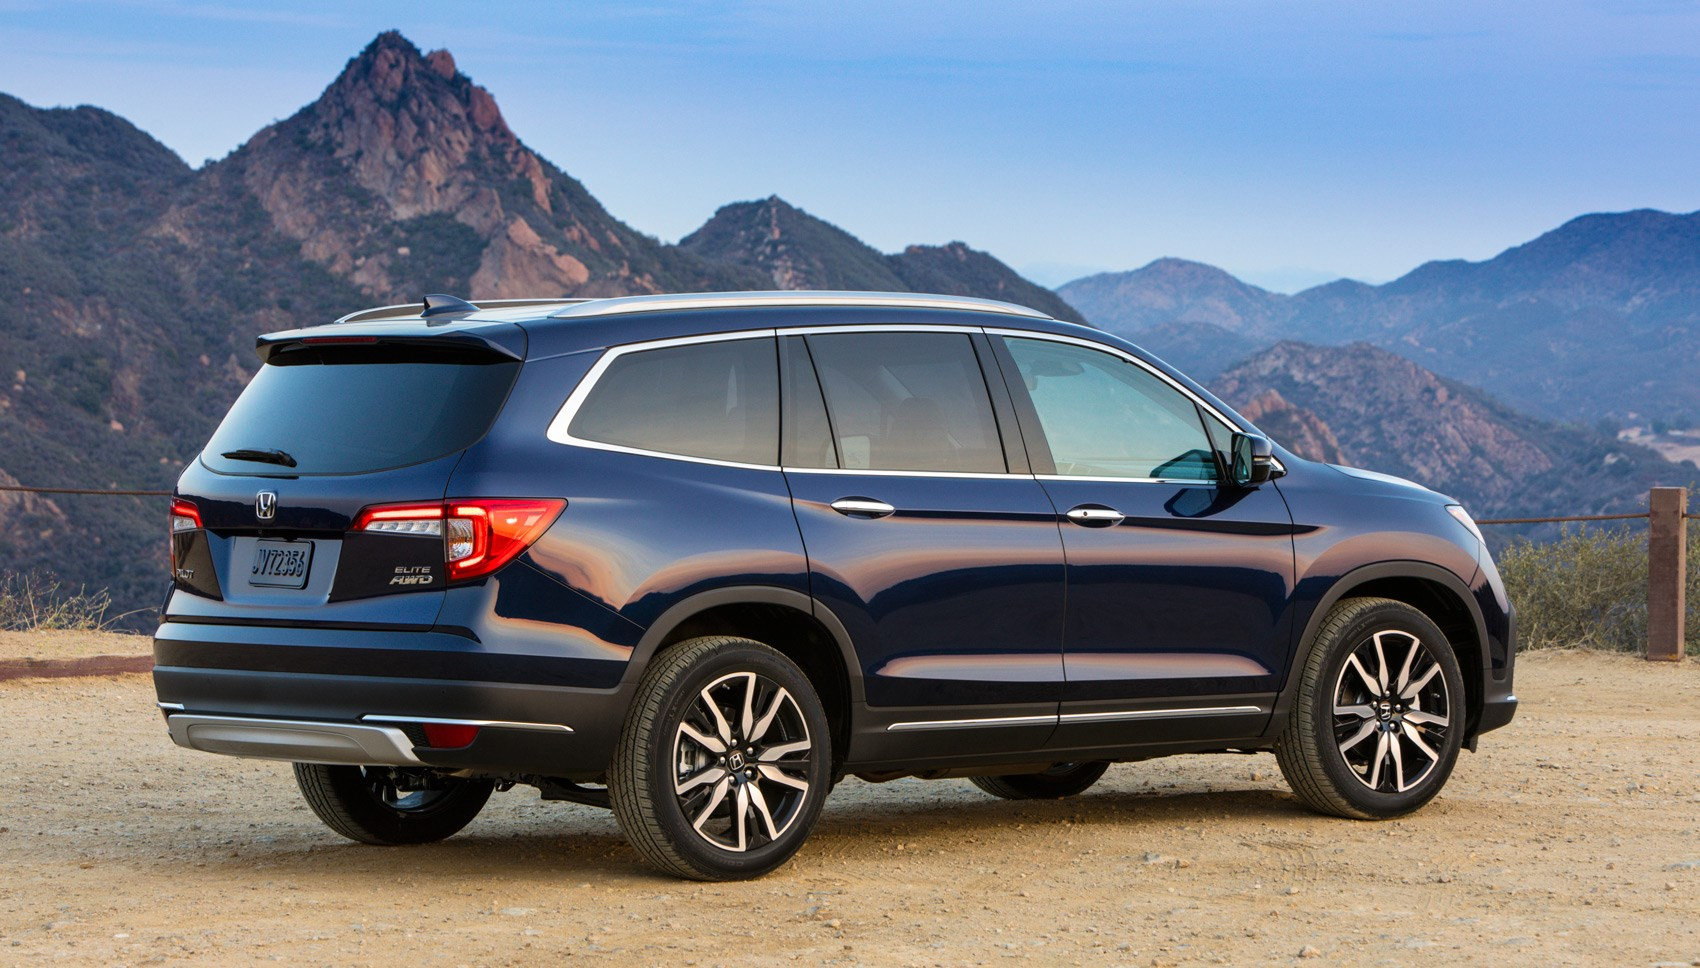 Honda Pilot (2018) review: large and in charge? | CAR Magazine